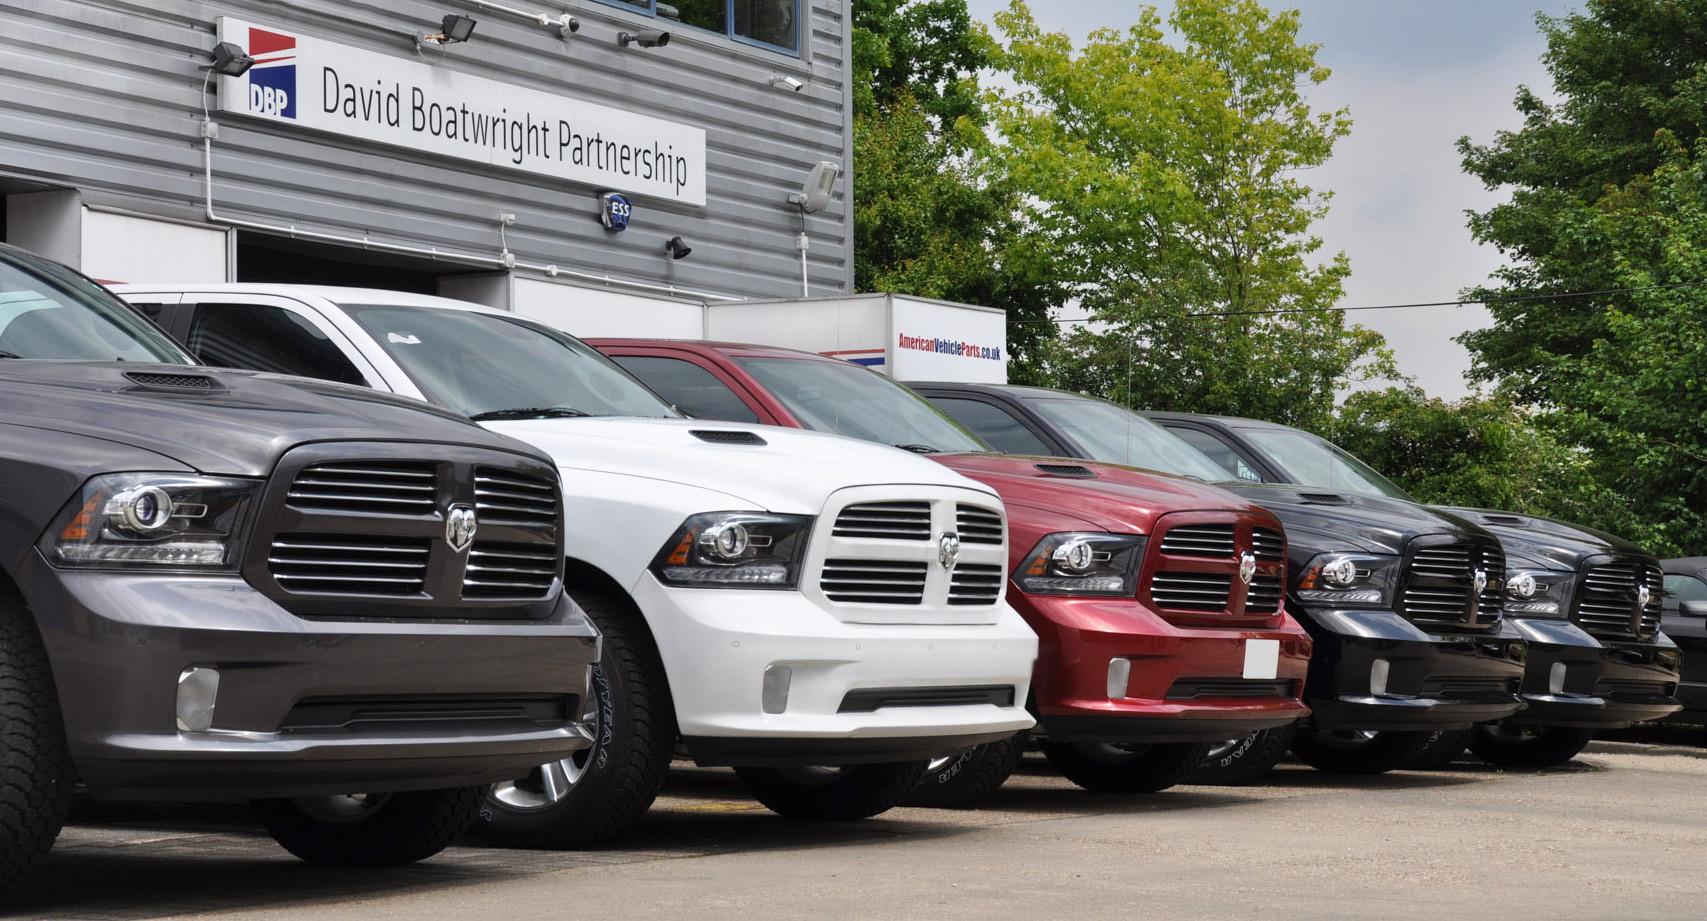 1-new-dodge rams outside david boatwright partnership